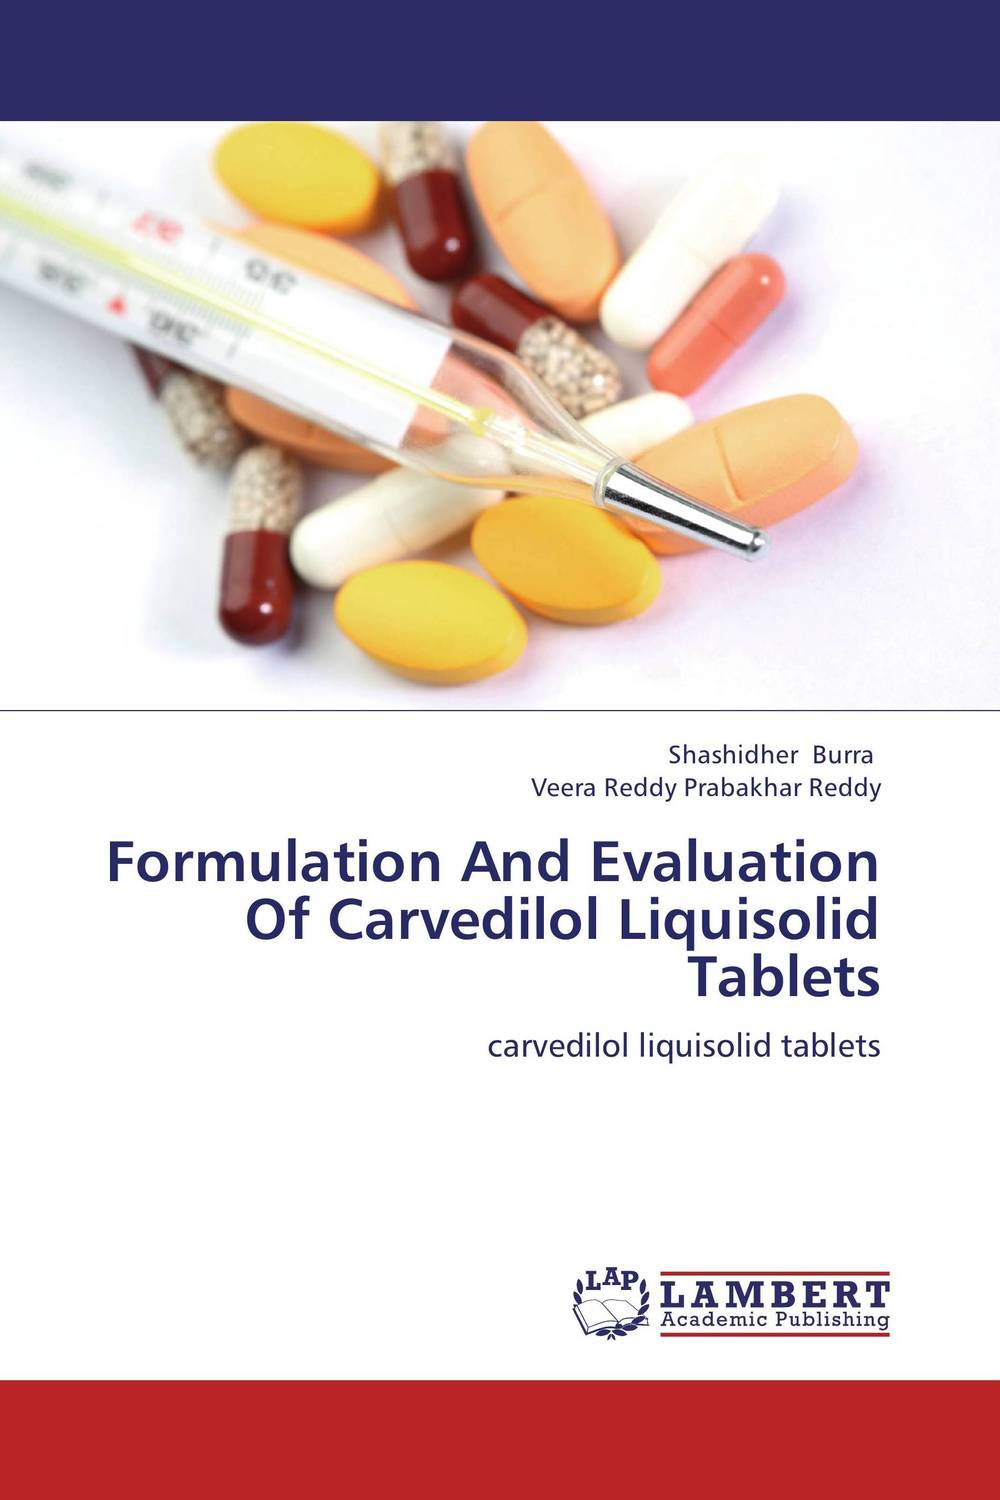 Formulation And Evaluation Of Carvedilol Liquisolid Tablets alex avdeef absorption and drug development solubility permeability and charge state